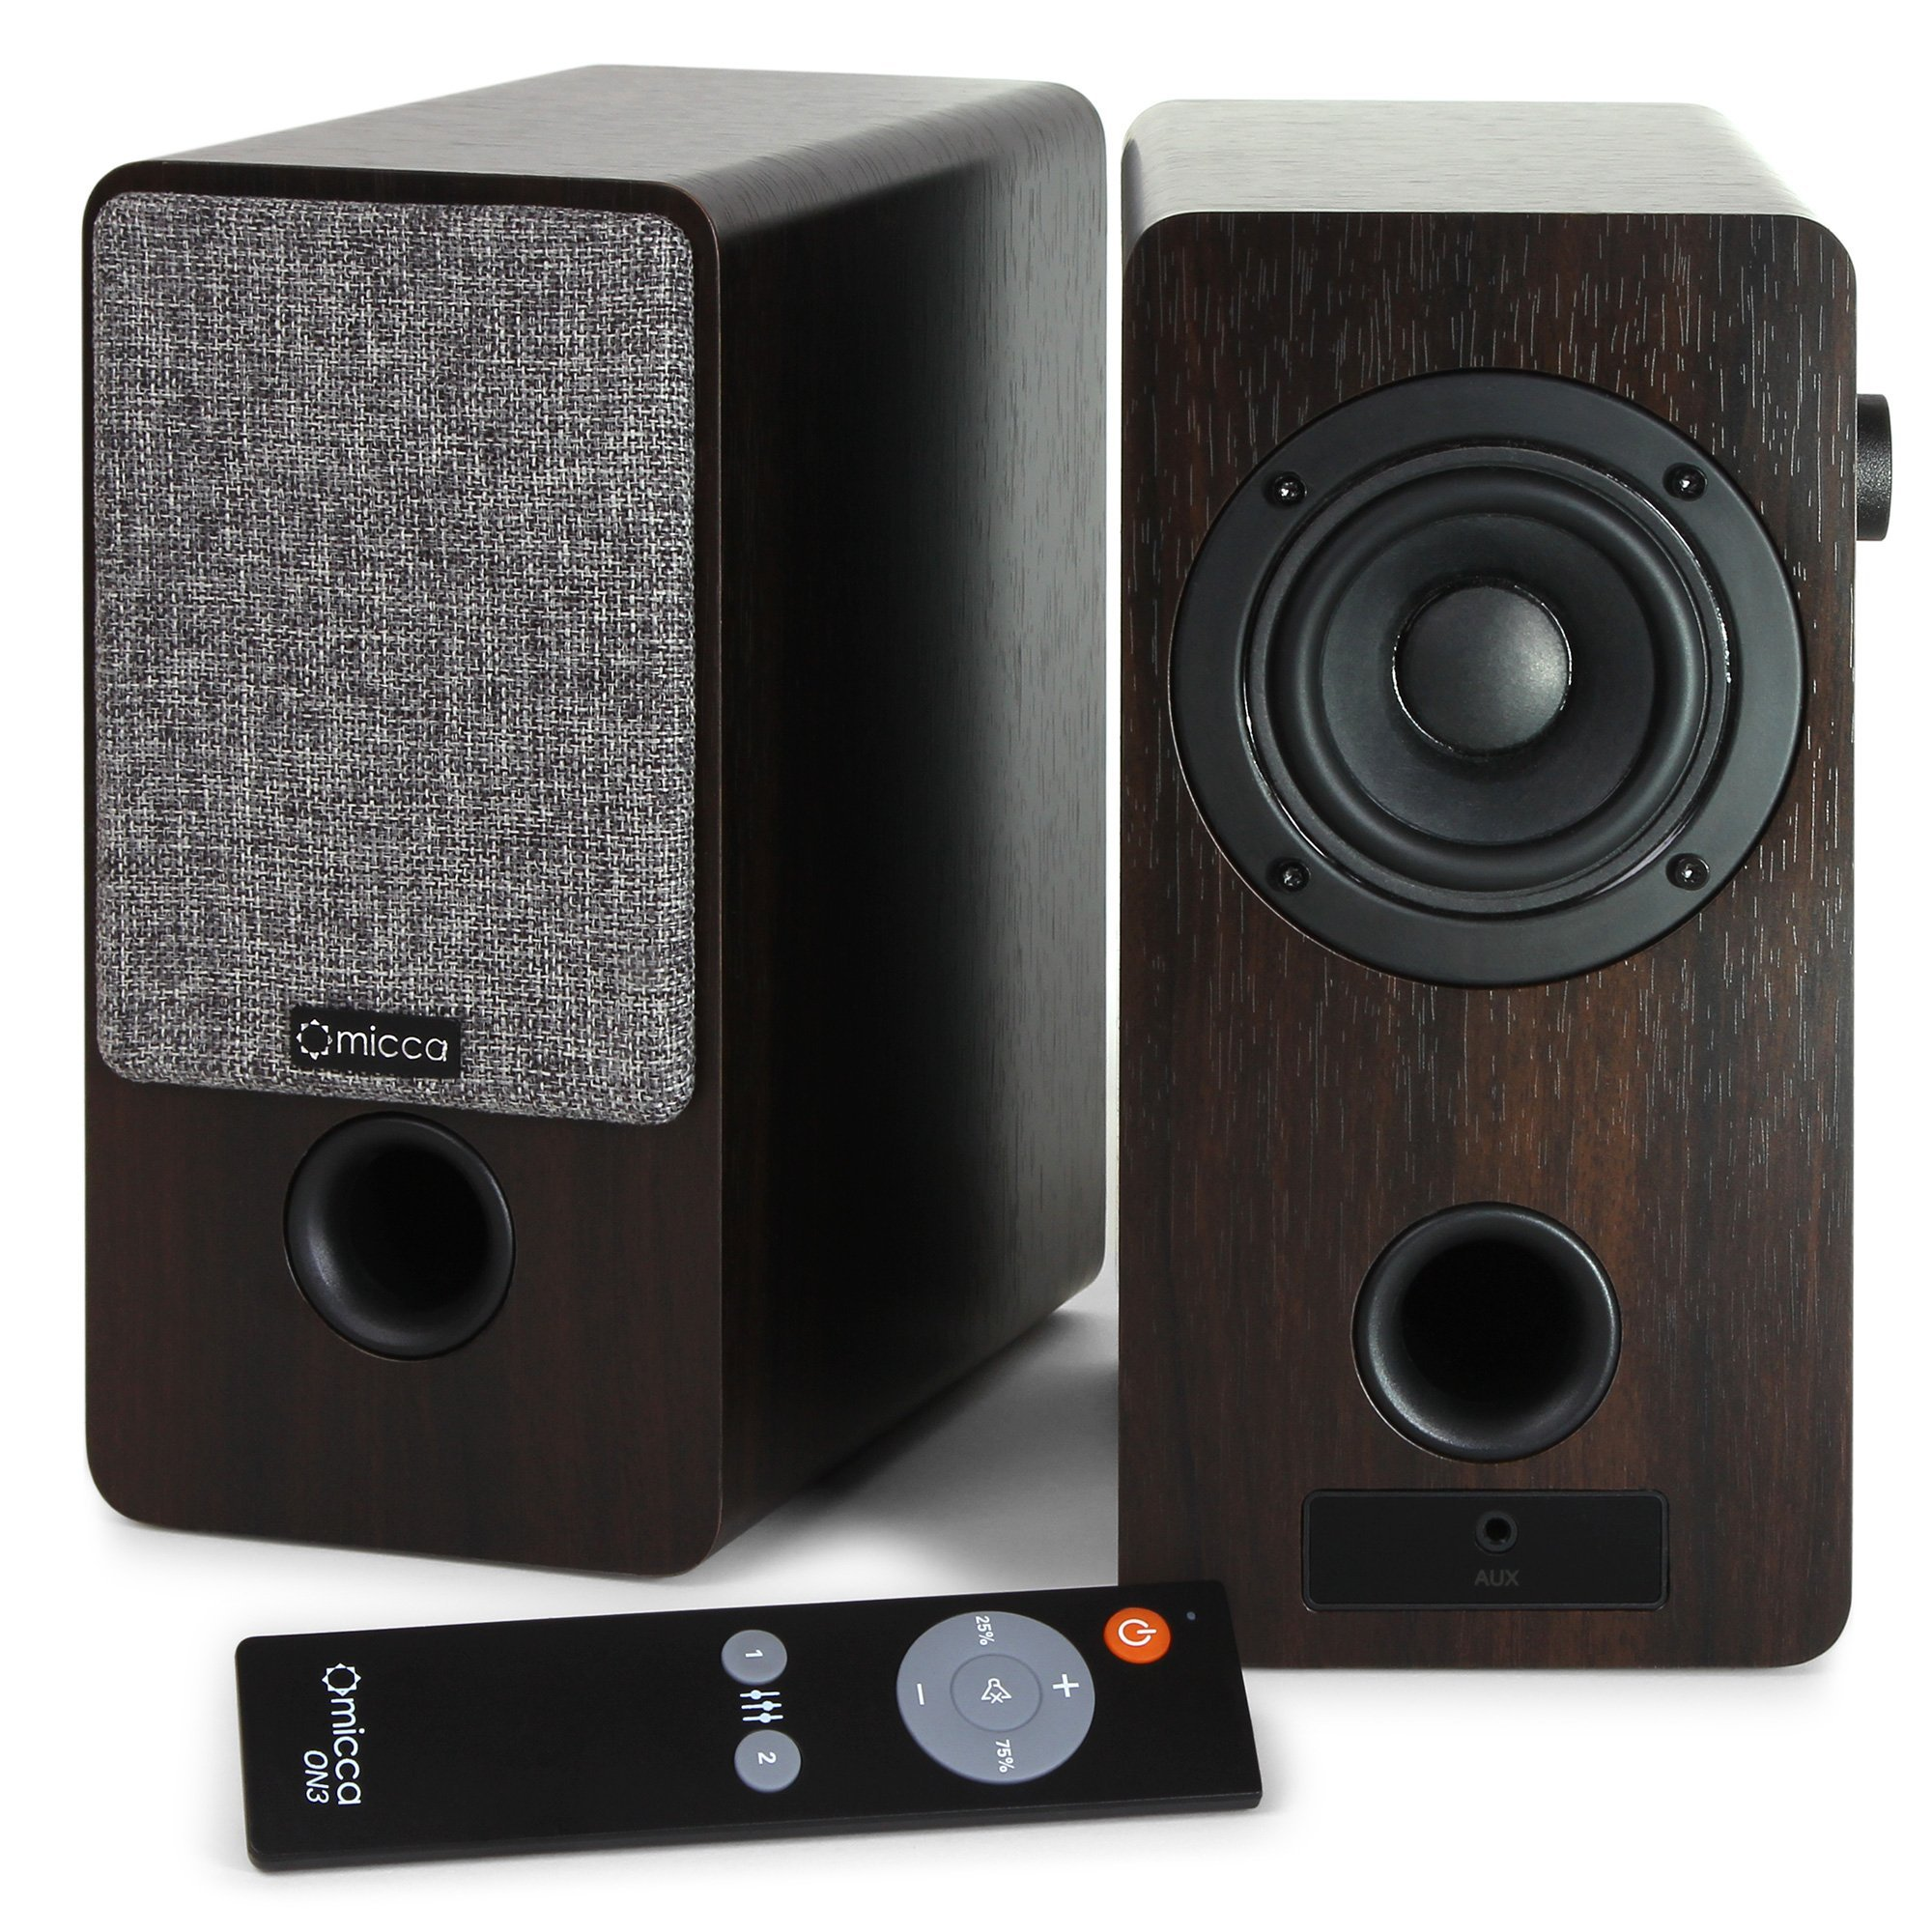 Micca ON3 3-Inch Powered Bookshelf Speakers with Remote Control, 48 Watts (24W x 2) RMS Power, Front and Rear Input Jacks by Micca